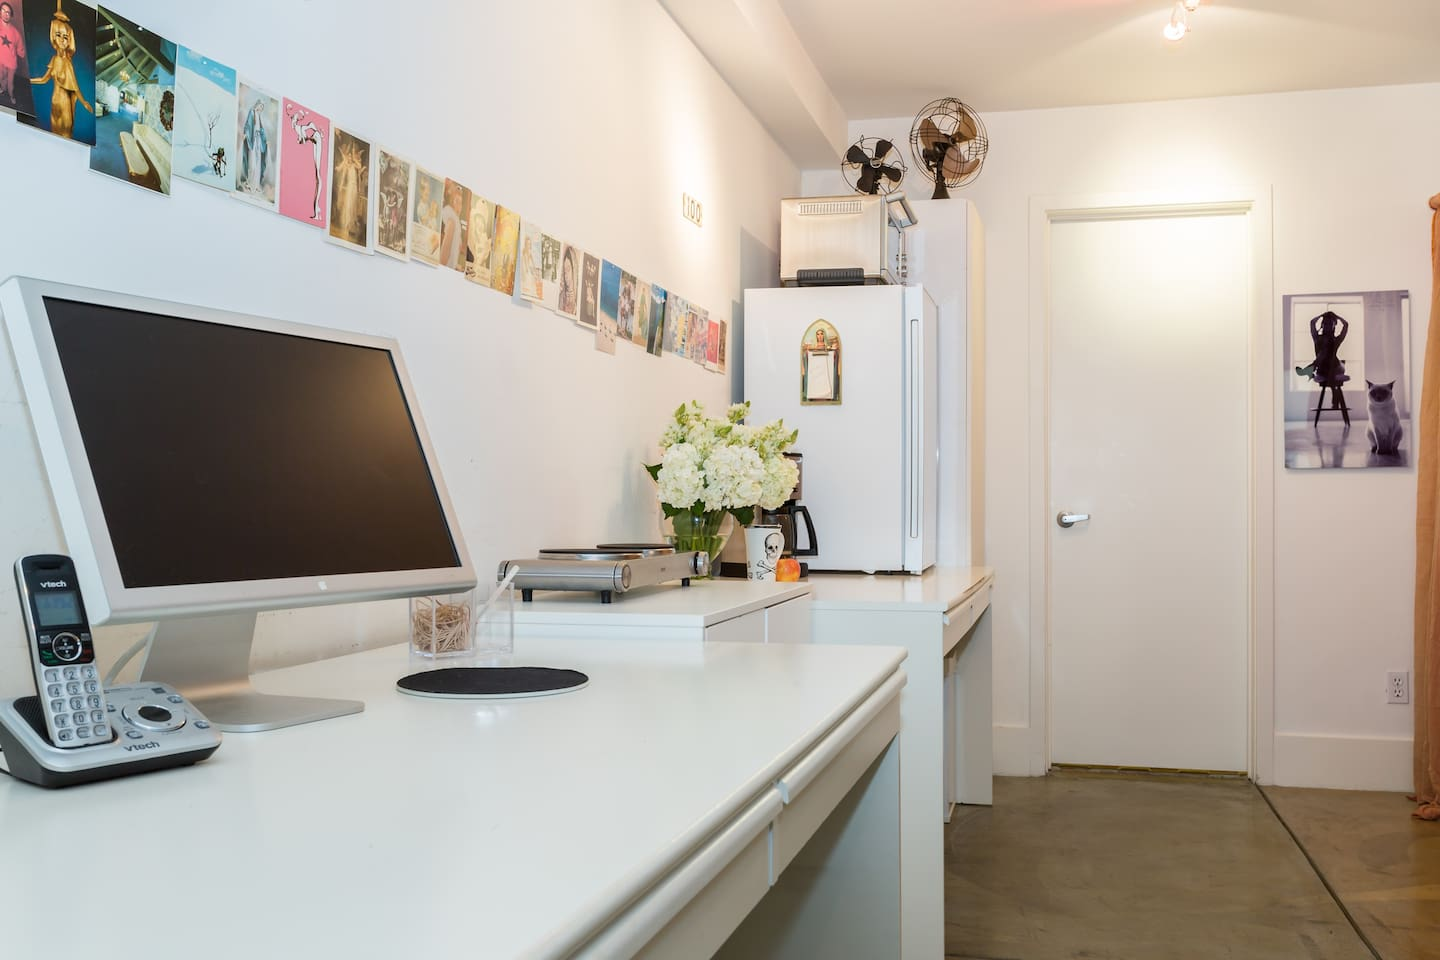 At the desk, enjoy FREE unlimited local and long distance calls in the US with an answering machine, Highest speed wireless internet, and Apple large flat screen monitor.